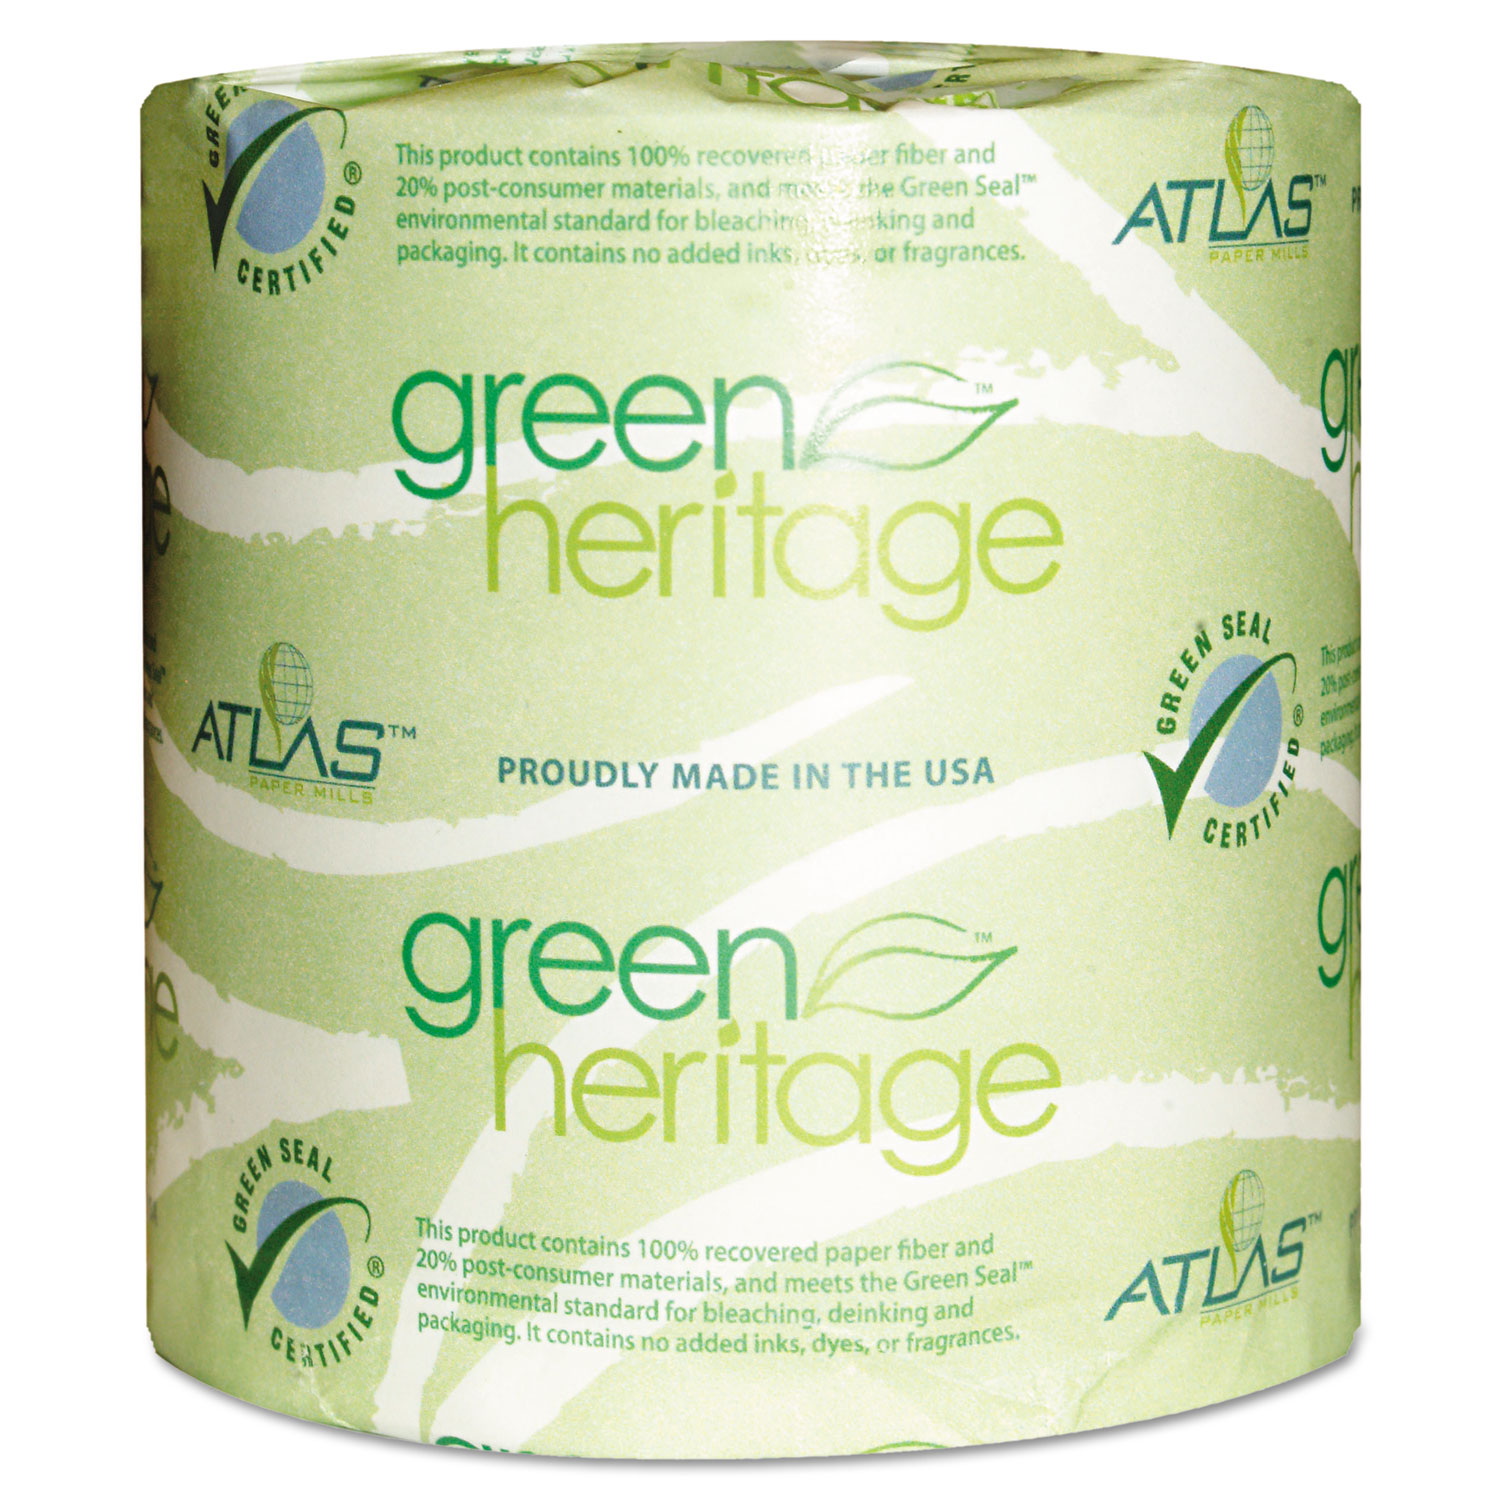 Green Heritage Toilet Tissue, 4.4 x 3.1 Sheets, 2Ply, 500/Roll, 96 Rolls/CT